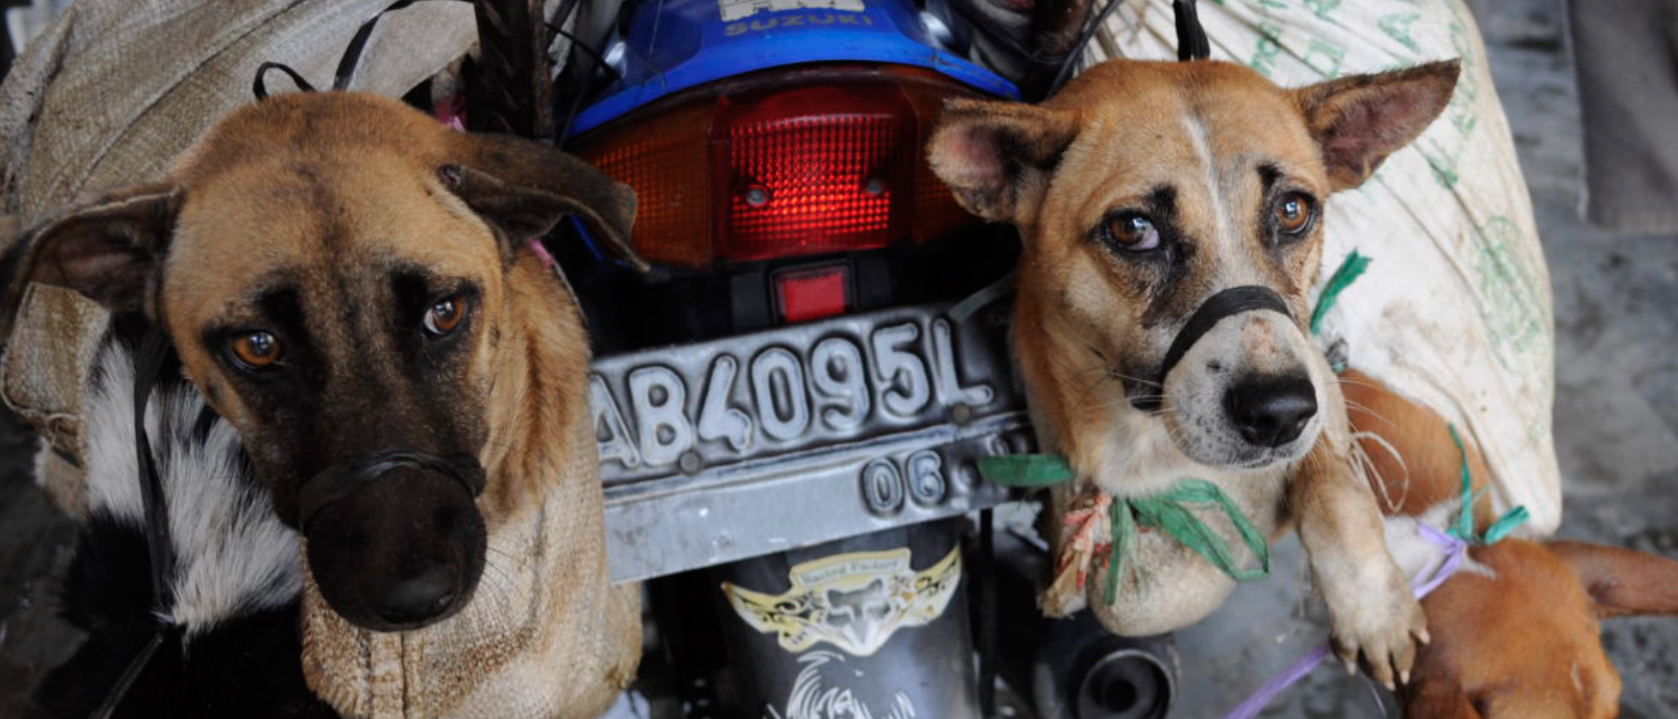 DOG MEAT FREE INDONESIA (DMFI)